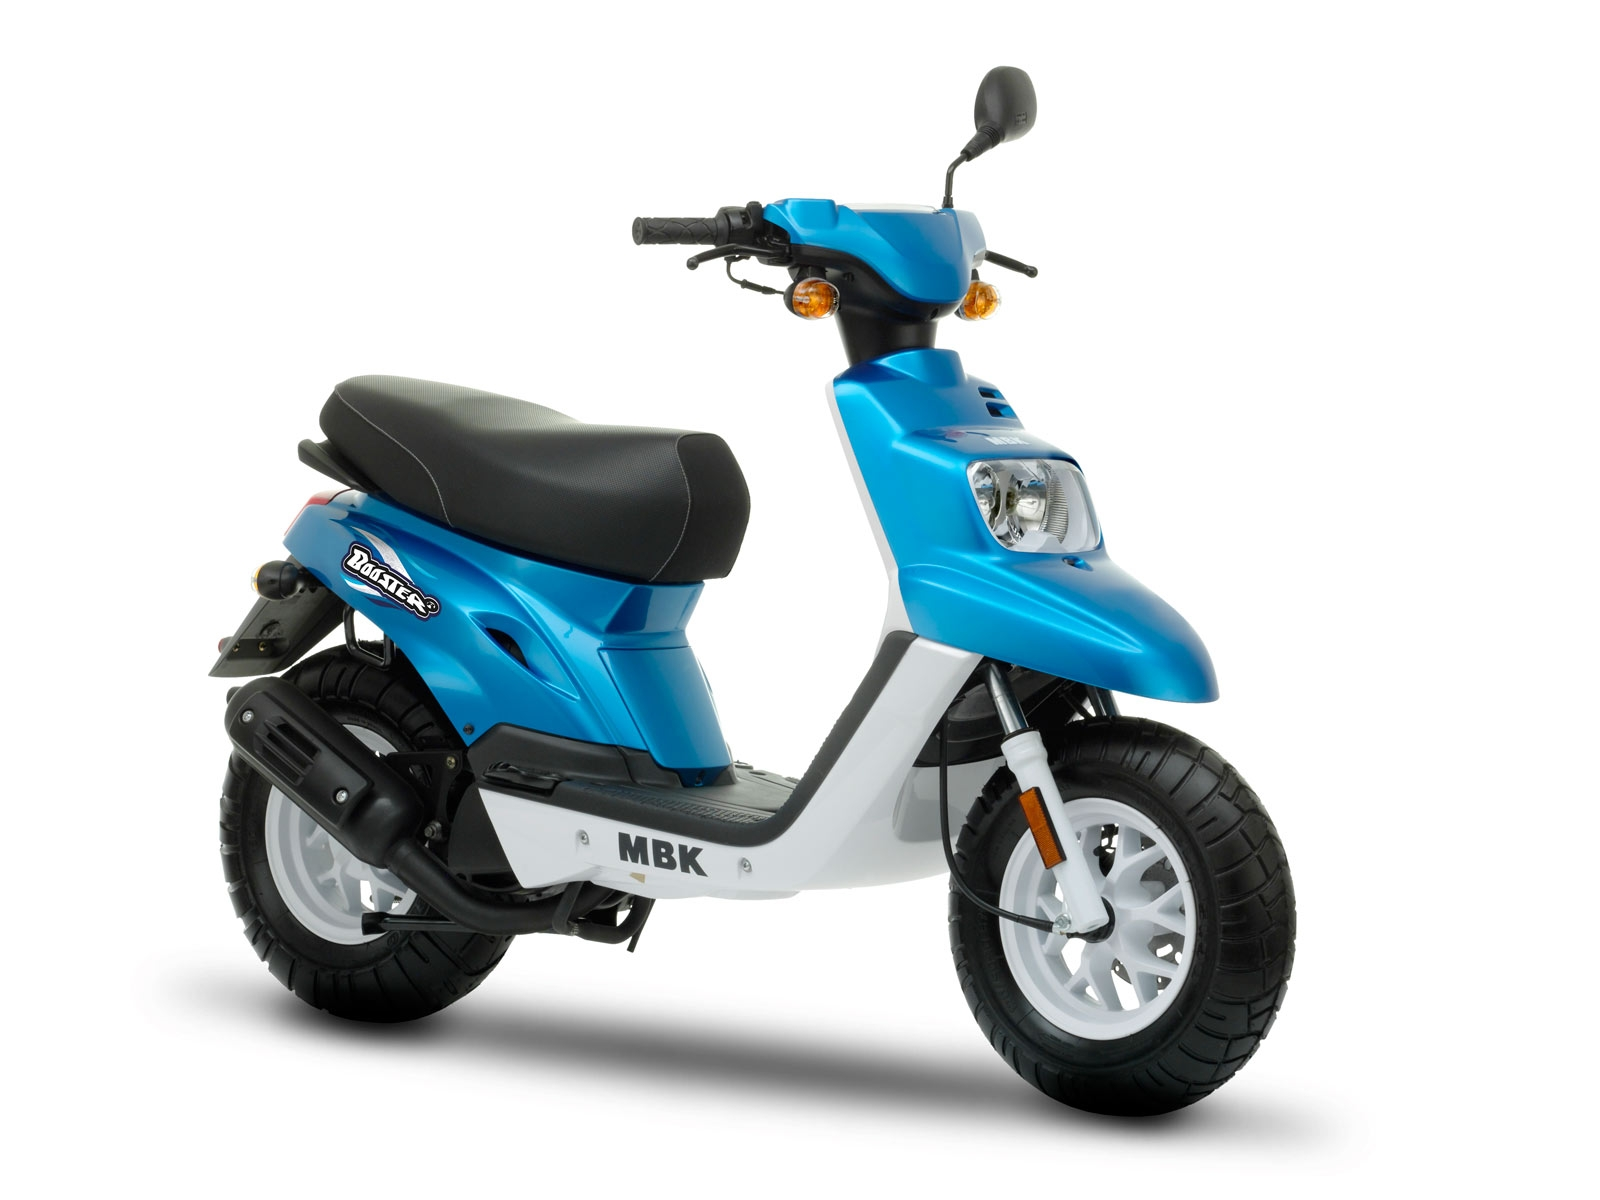 MBK Scooter #1